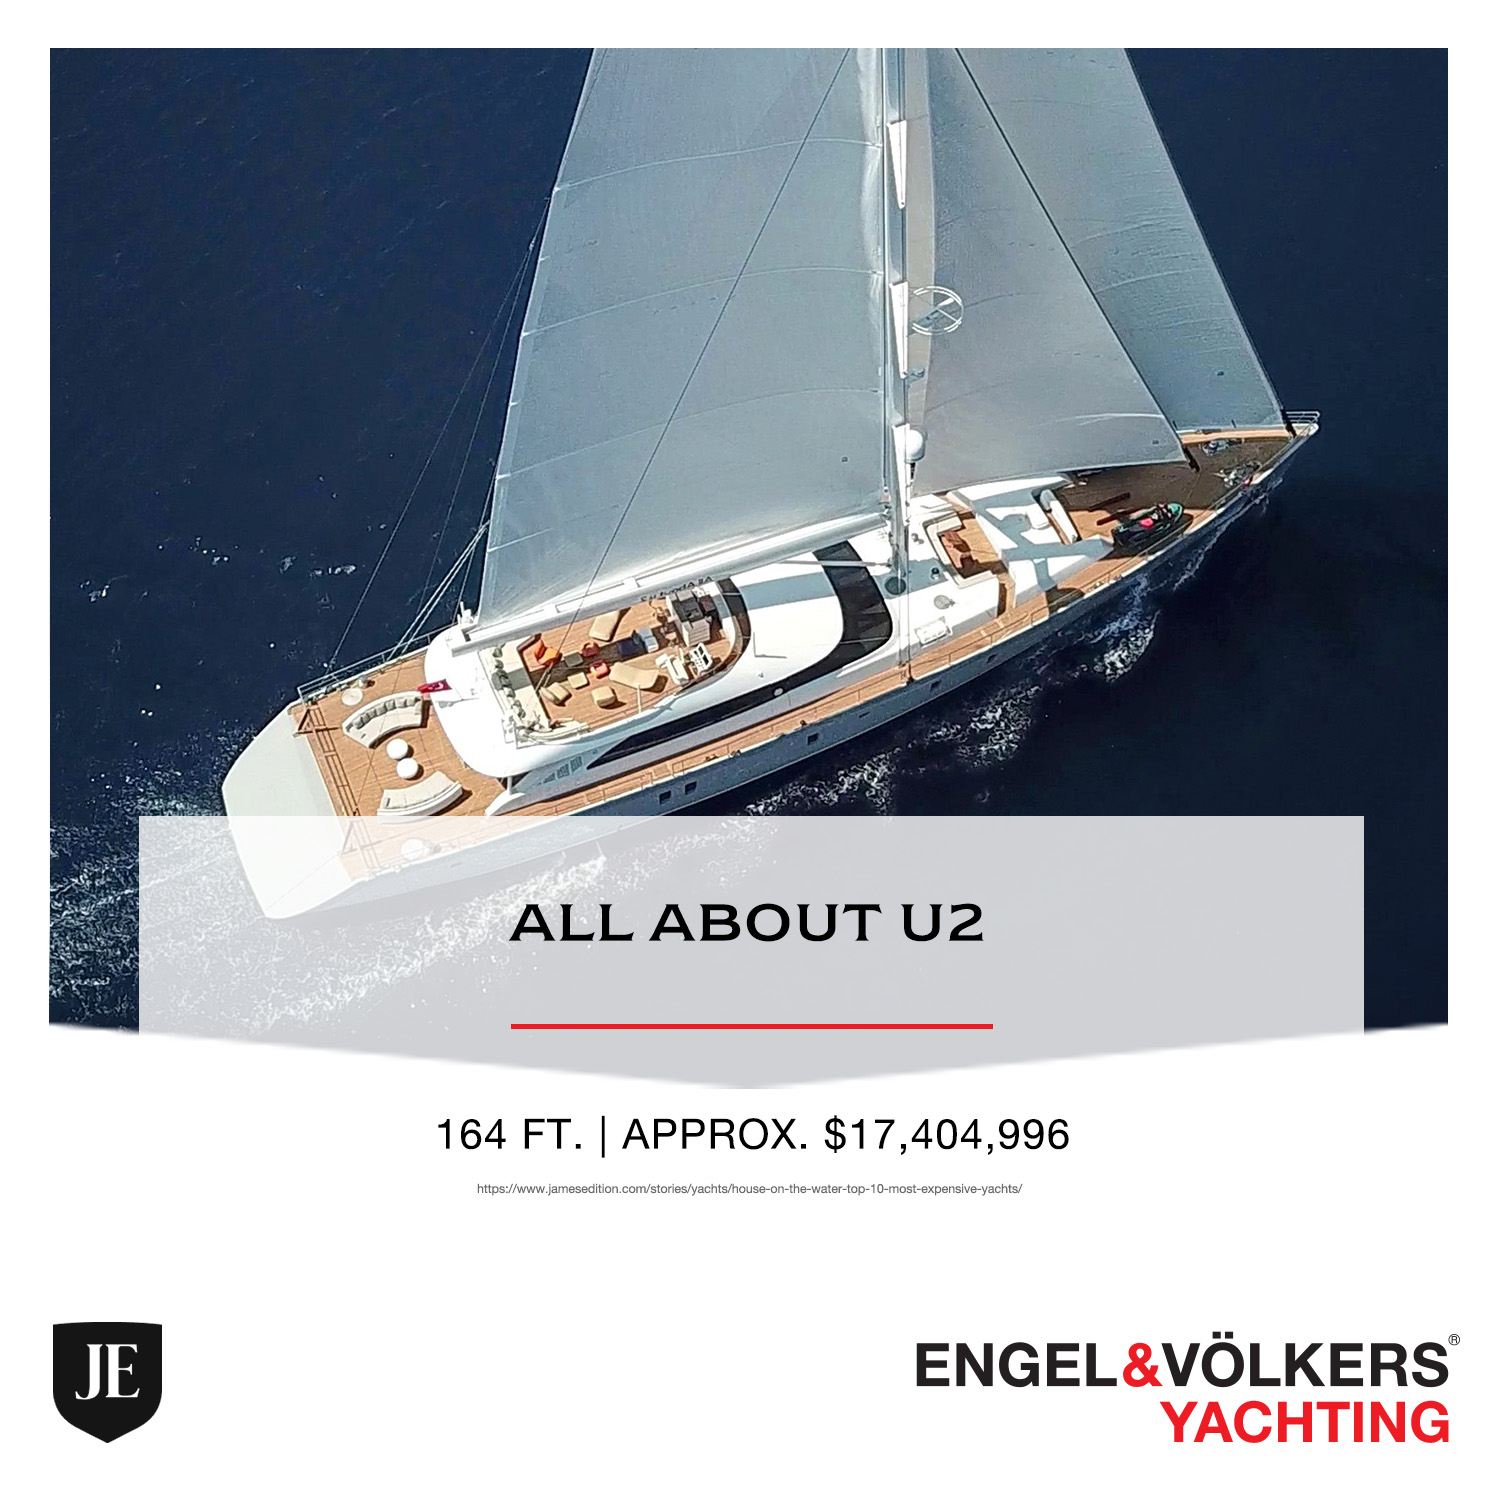 All About U2 BATEAU ENGEL & VOLKERS YACHTING